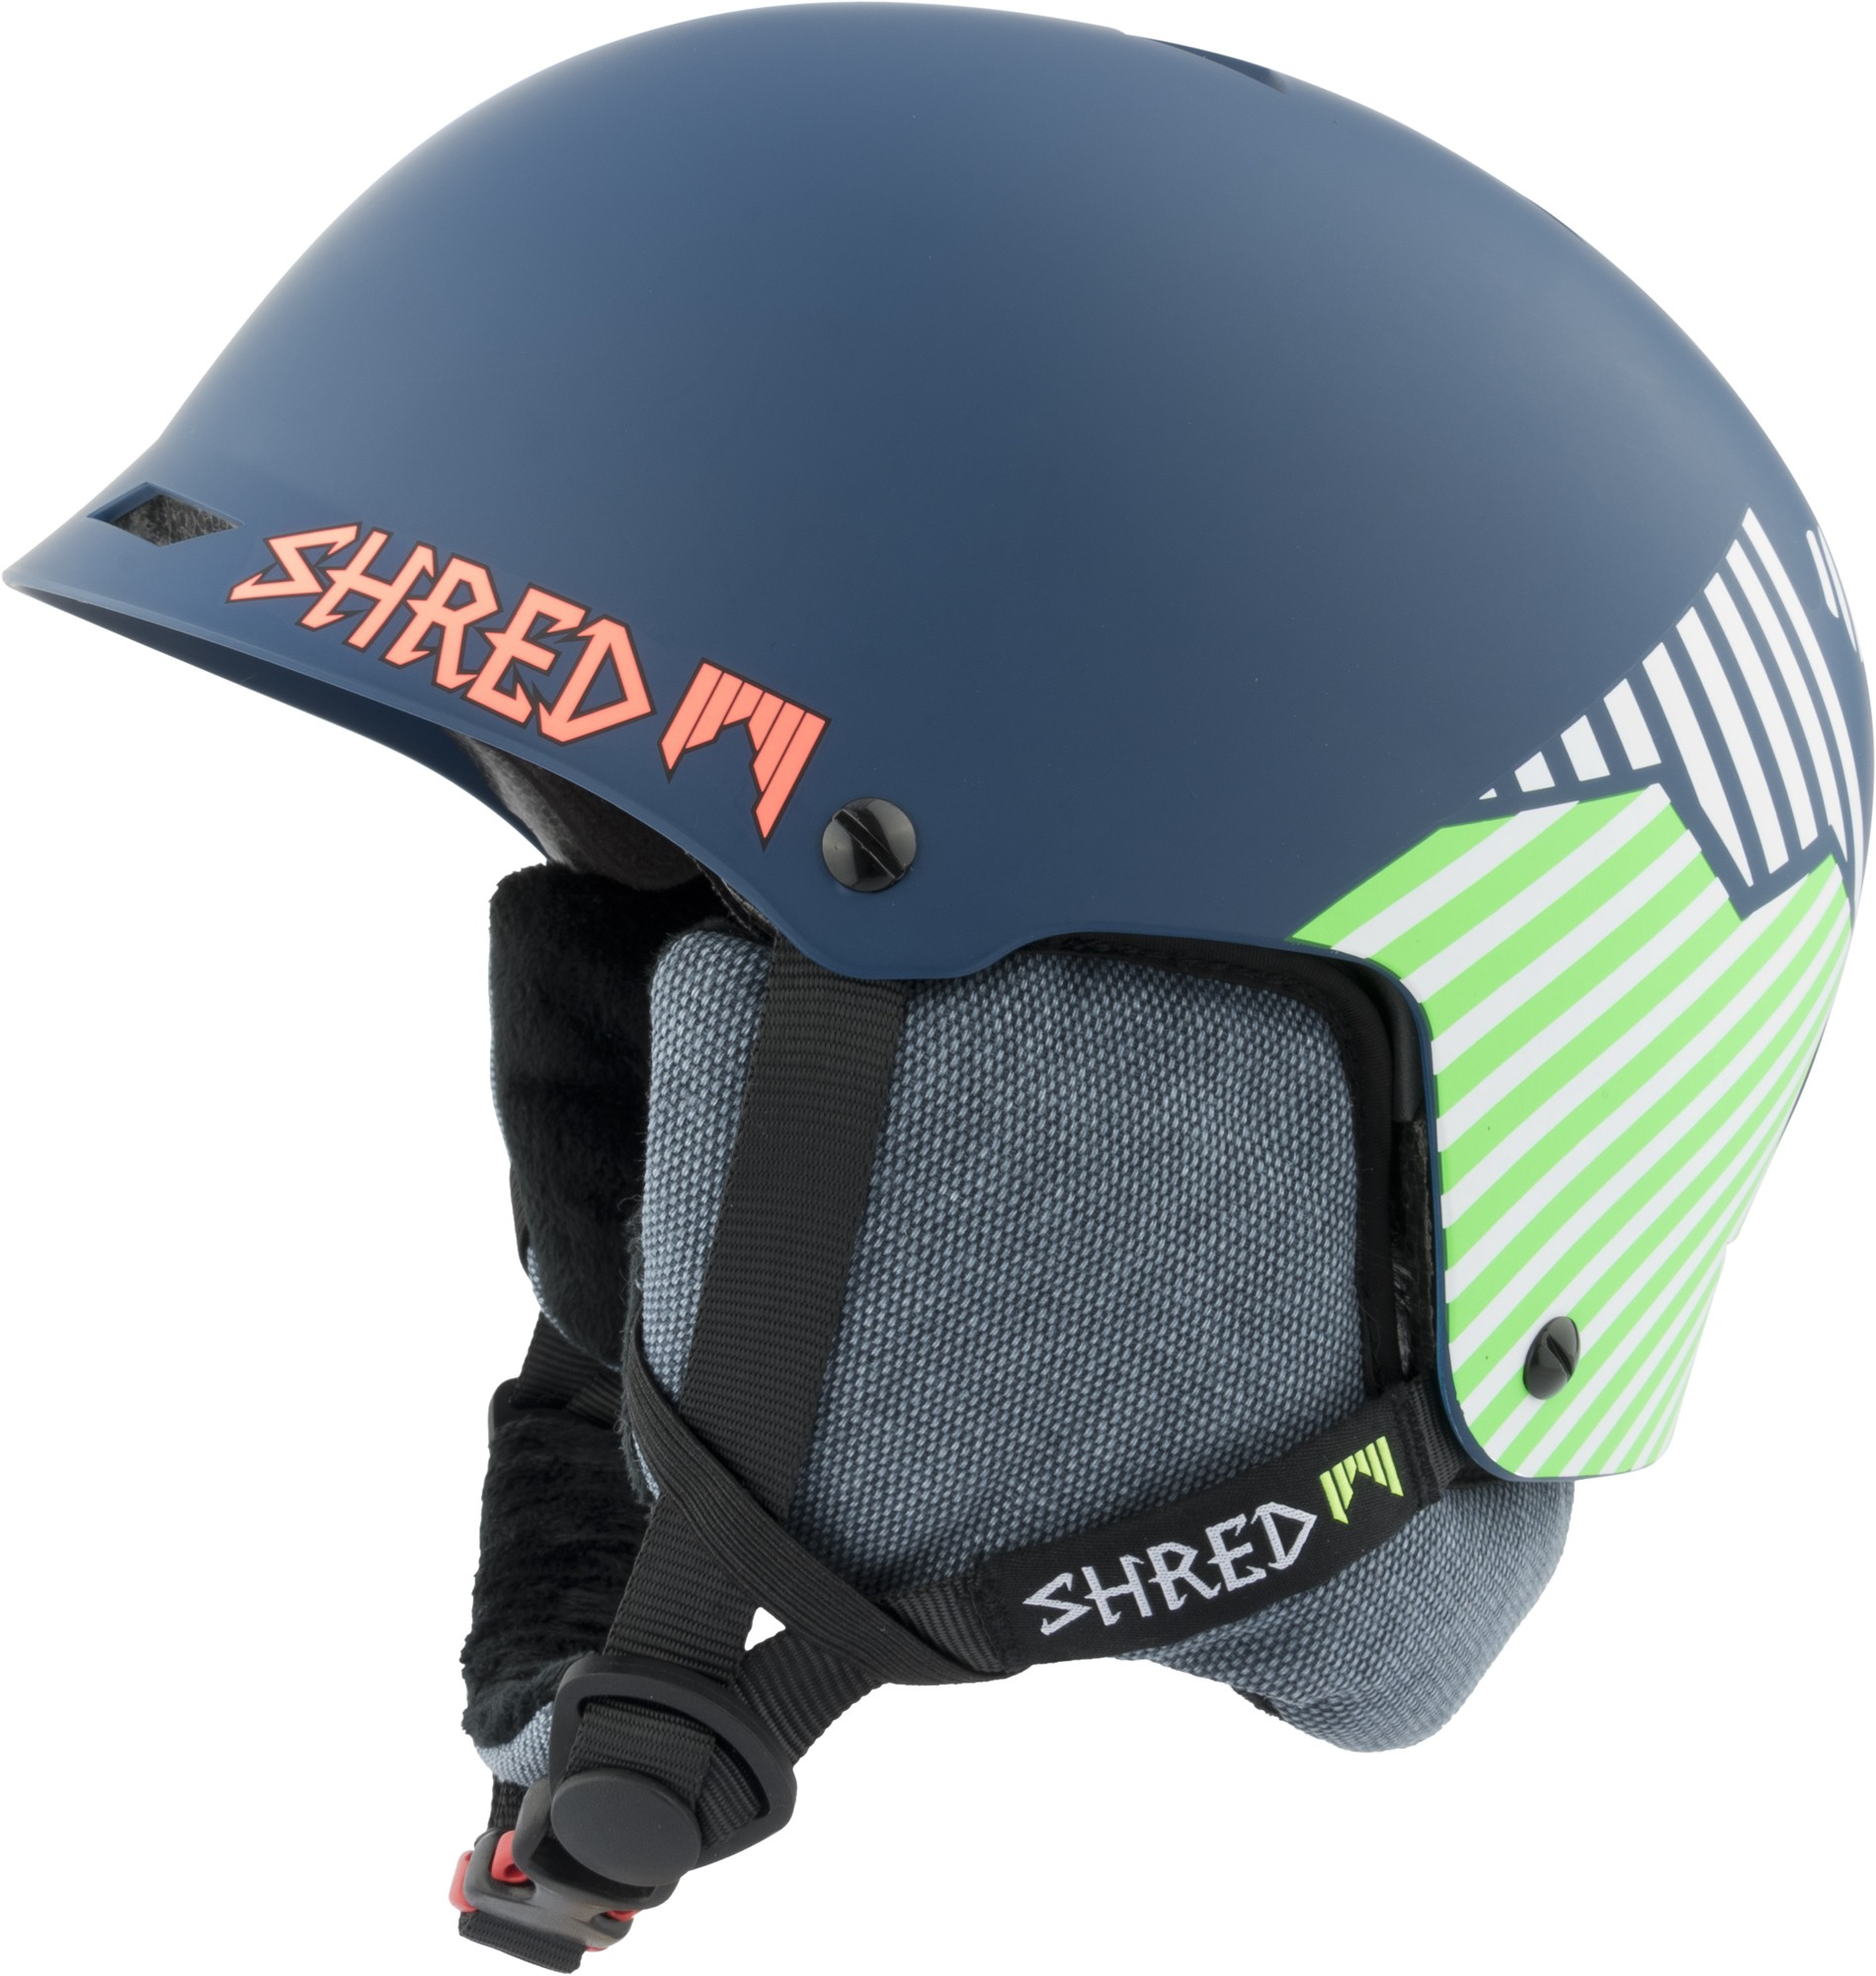 Shred HALF BRAIN D-LUX NEEDMORESNOW ski helmet, 2017